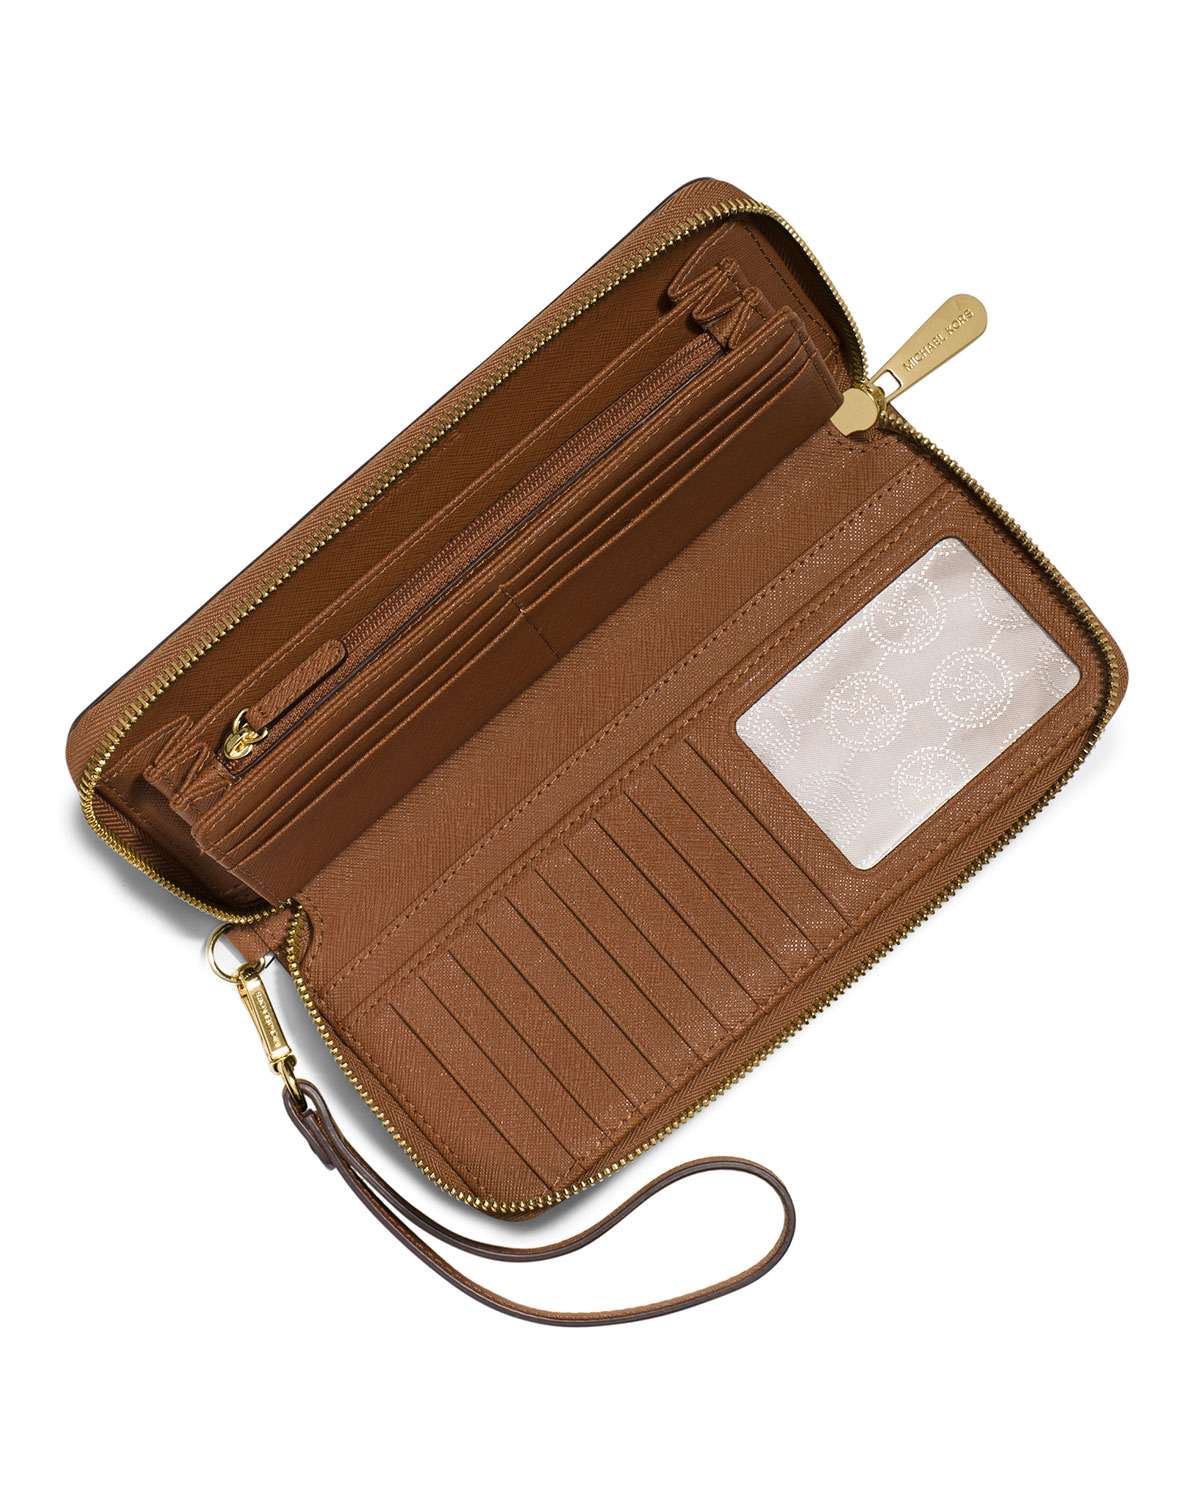 bce720f8e57a Lyst - MICHAEL Michael Kors Leather Wristlet in Brown